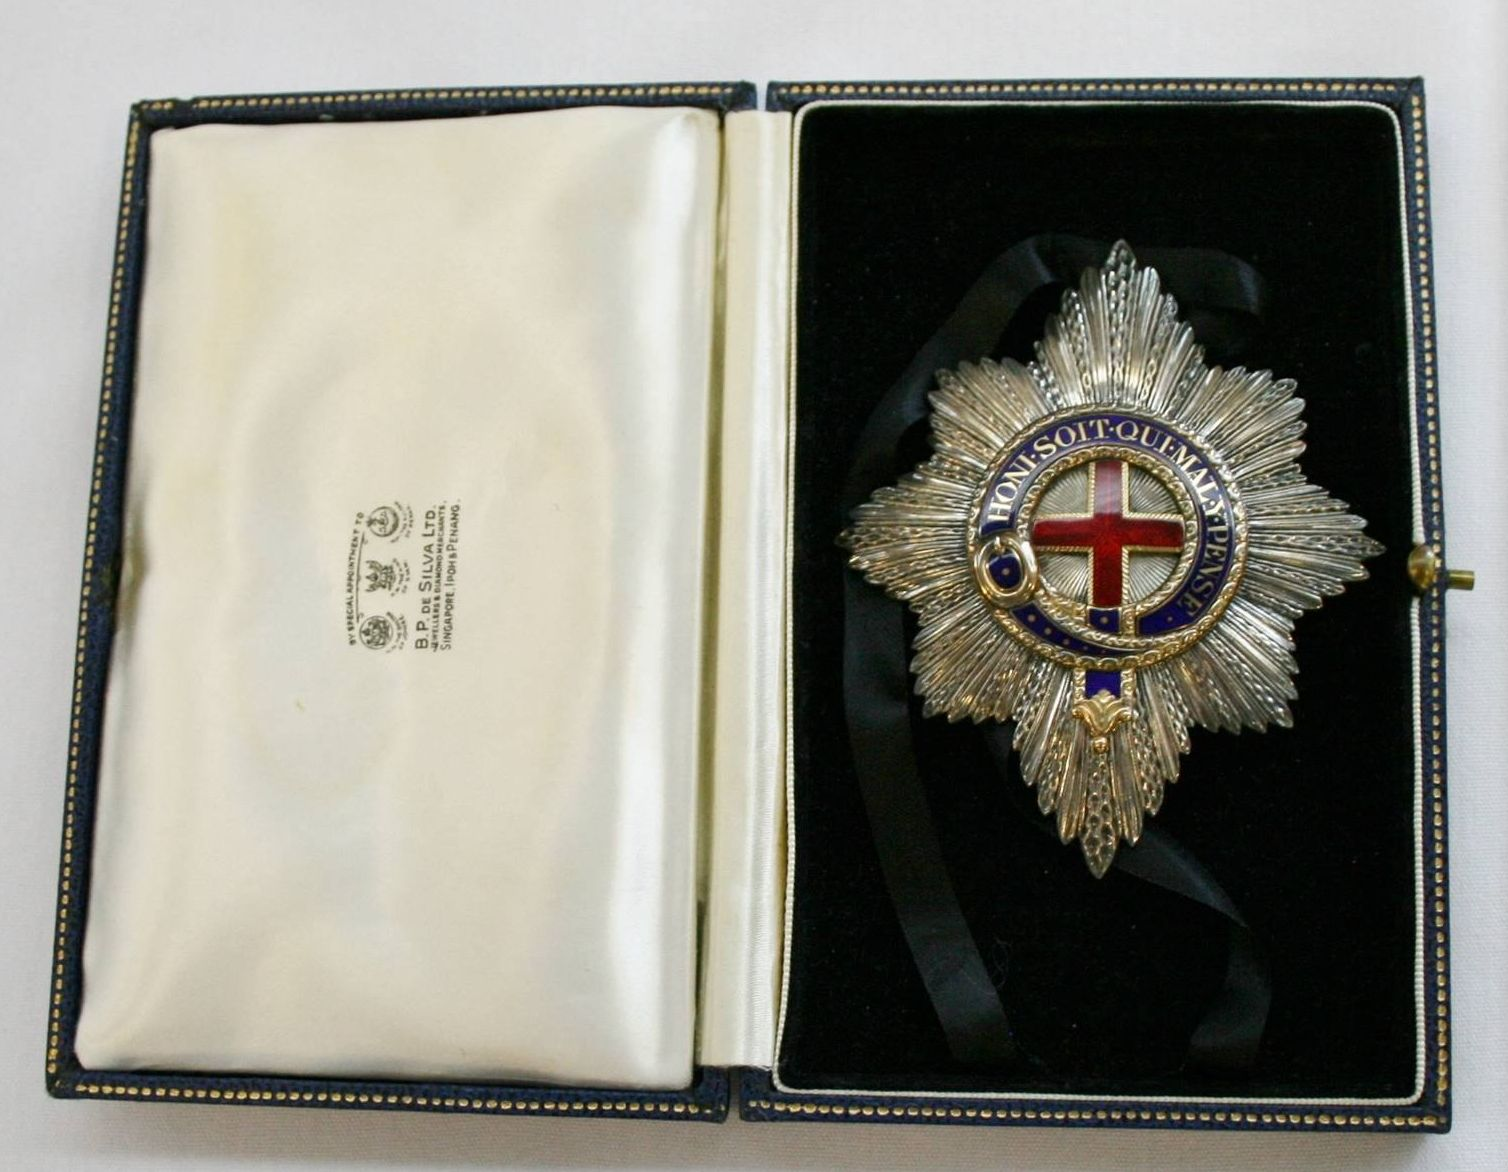 Order Of The Garter Personal Star Belonged To Richard Gavin Gardiner Casey Baron Casey Kg Gcmg Ch Order Of The Garter Royal Decorations Military Decorations